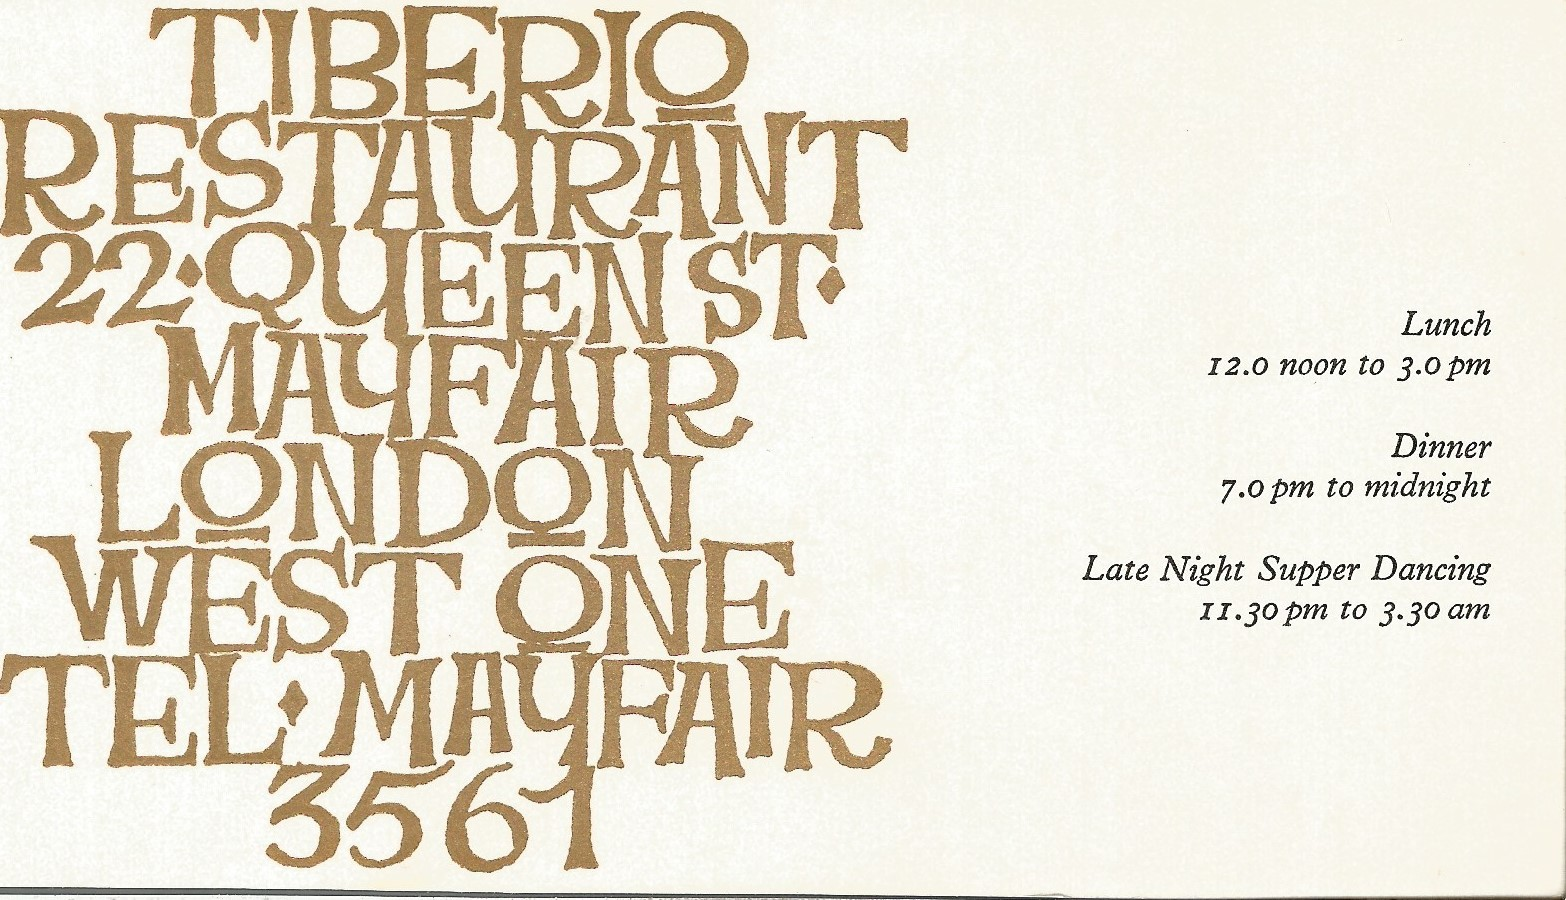 Barbara Streisand signed to clear back of vintage Tiberio Restaurant 4 x 3 inch contact card. From - Image 2 of 2